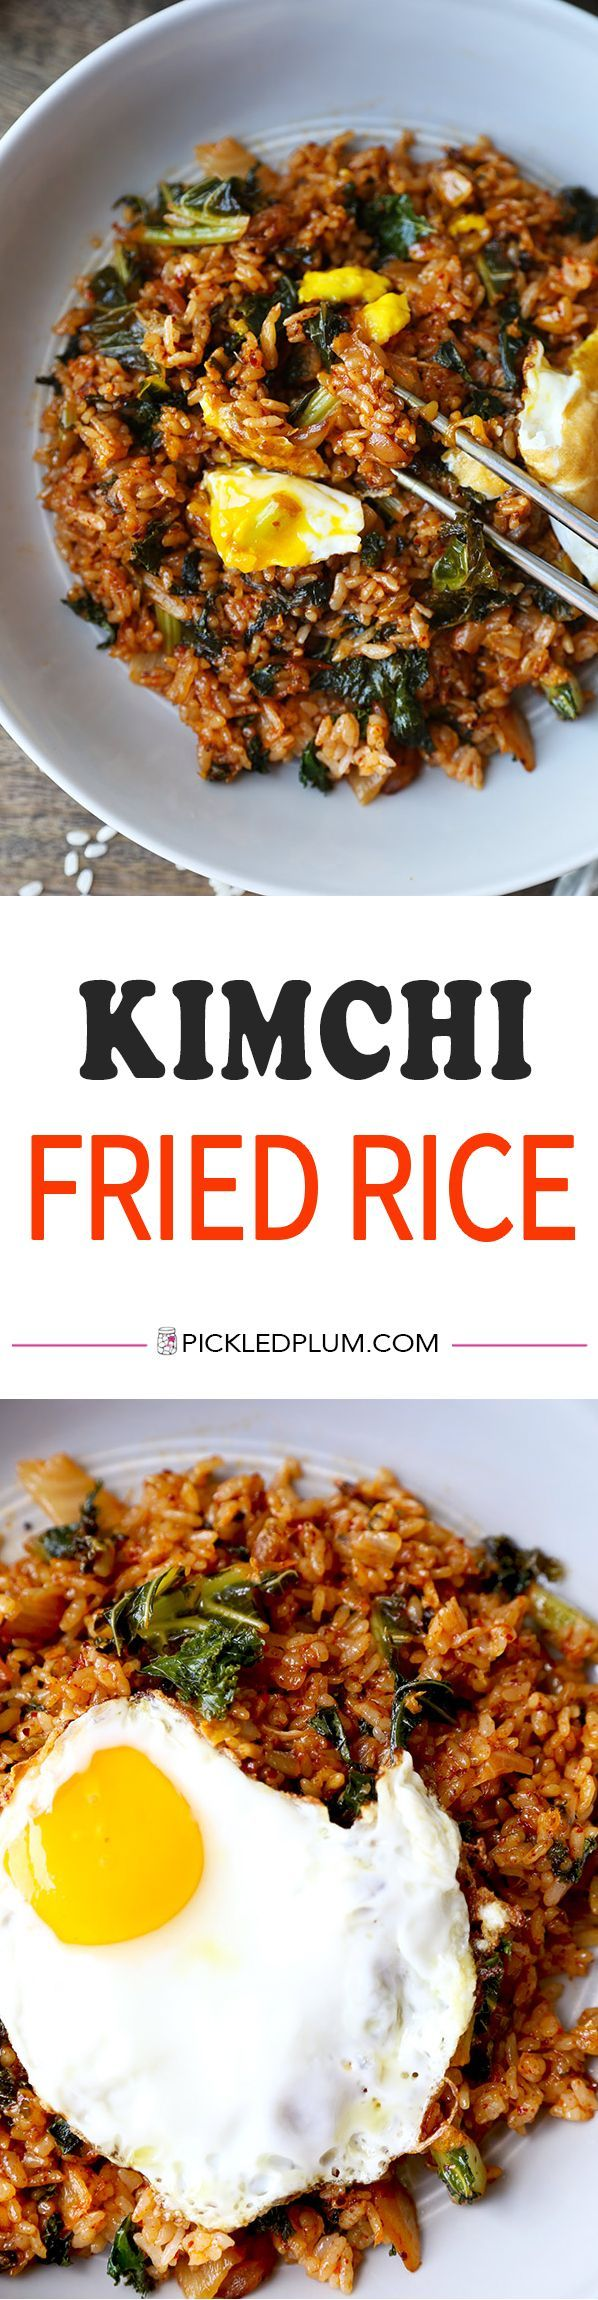 Kimchi Fried Rice - Whip up this quick & easy kimchi fried rice in less than 15 minutes! The kale adds a boost of nutrients to this already healthy & scrumptious recipe! Korean, recipe, fried rice, kimchi, kale, easy | pickledplum.com